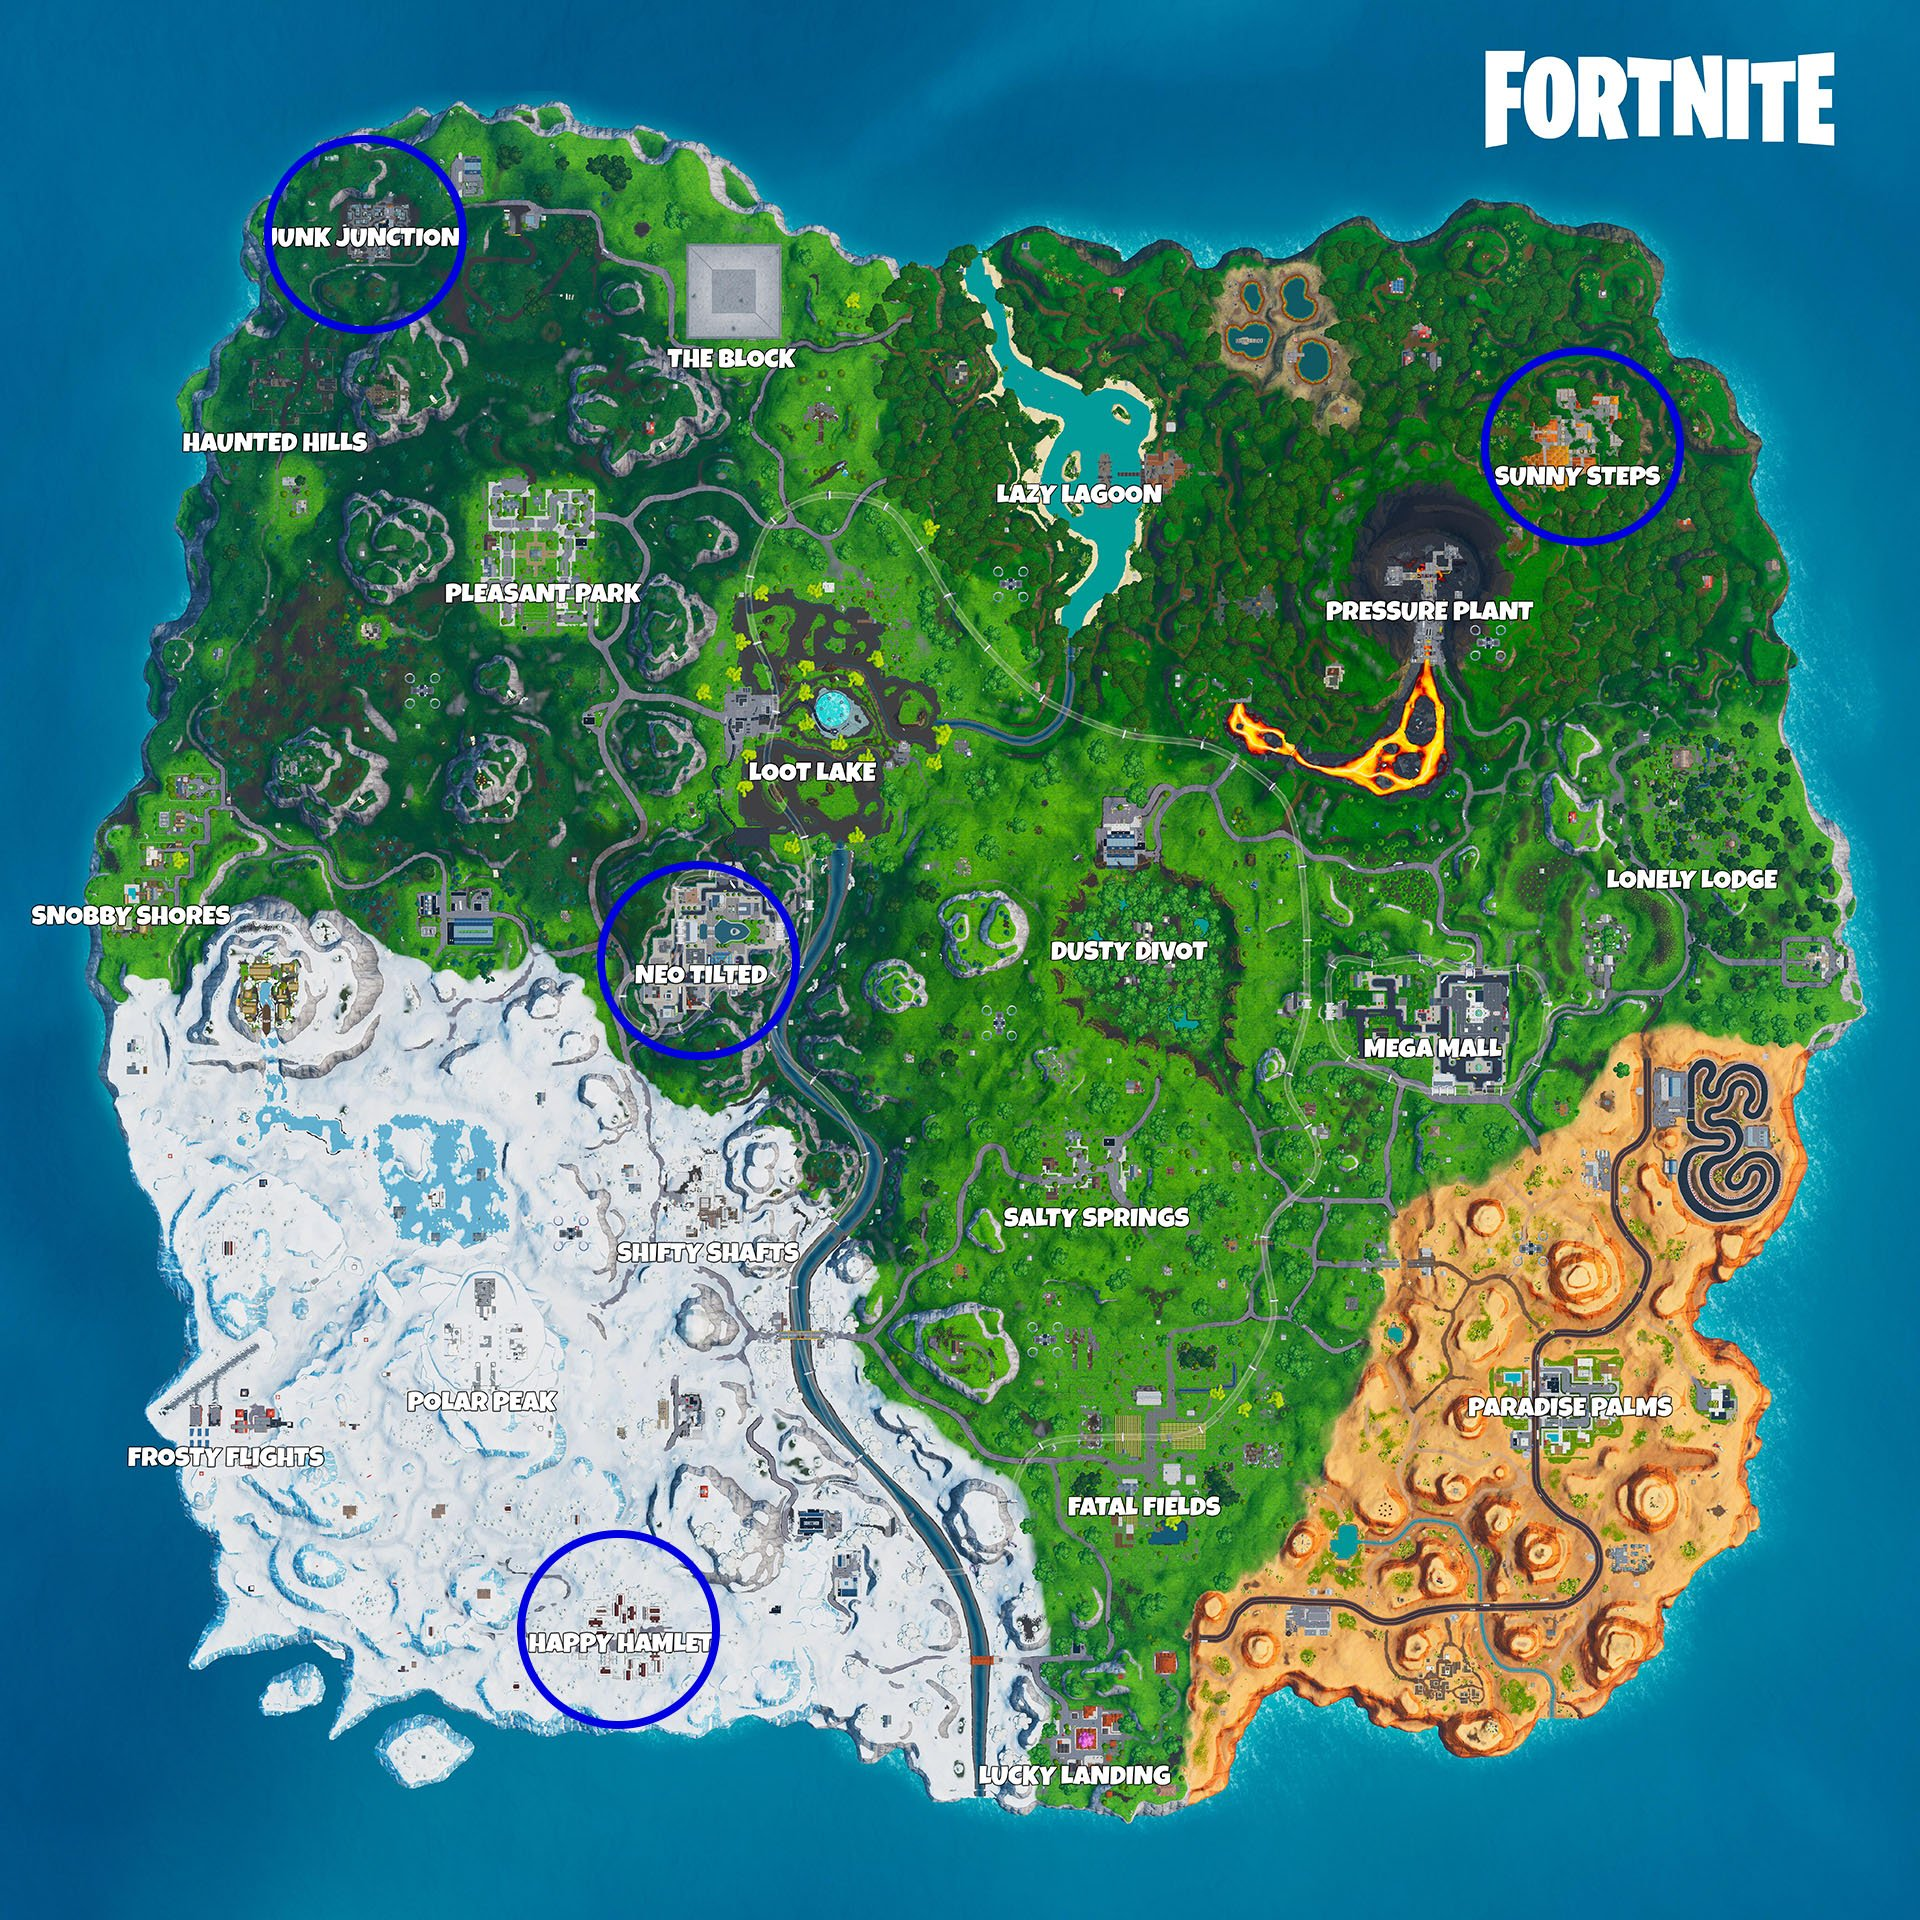 All clock locations in Fortnite - visit 3 different clocks